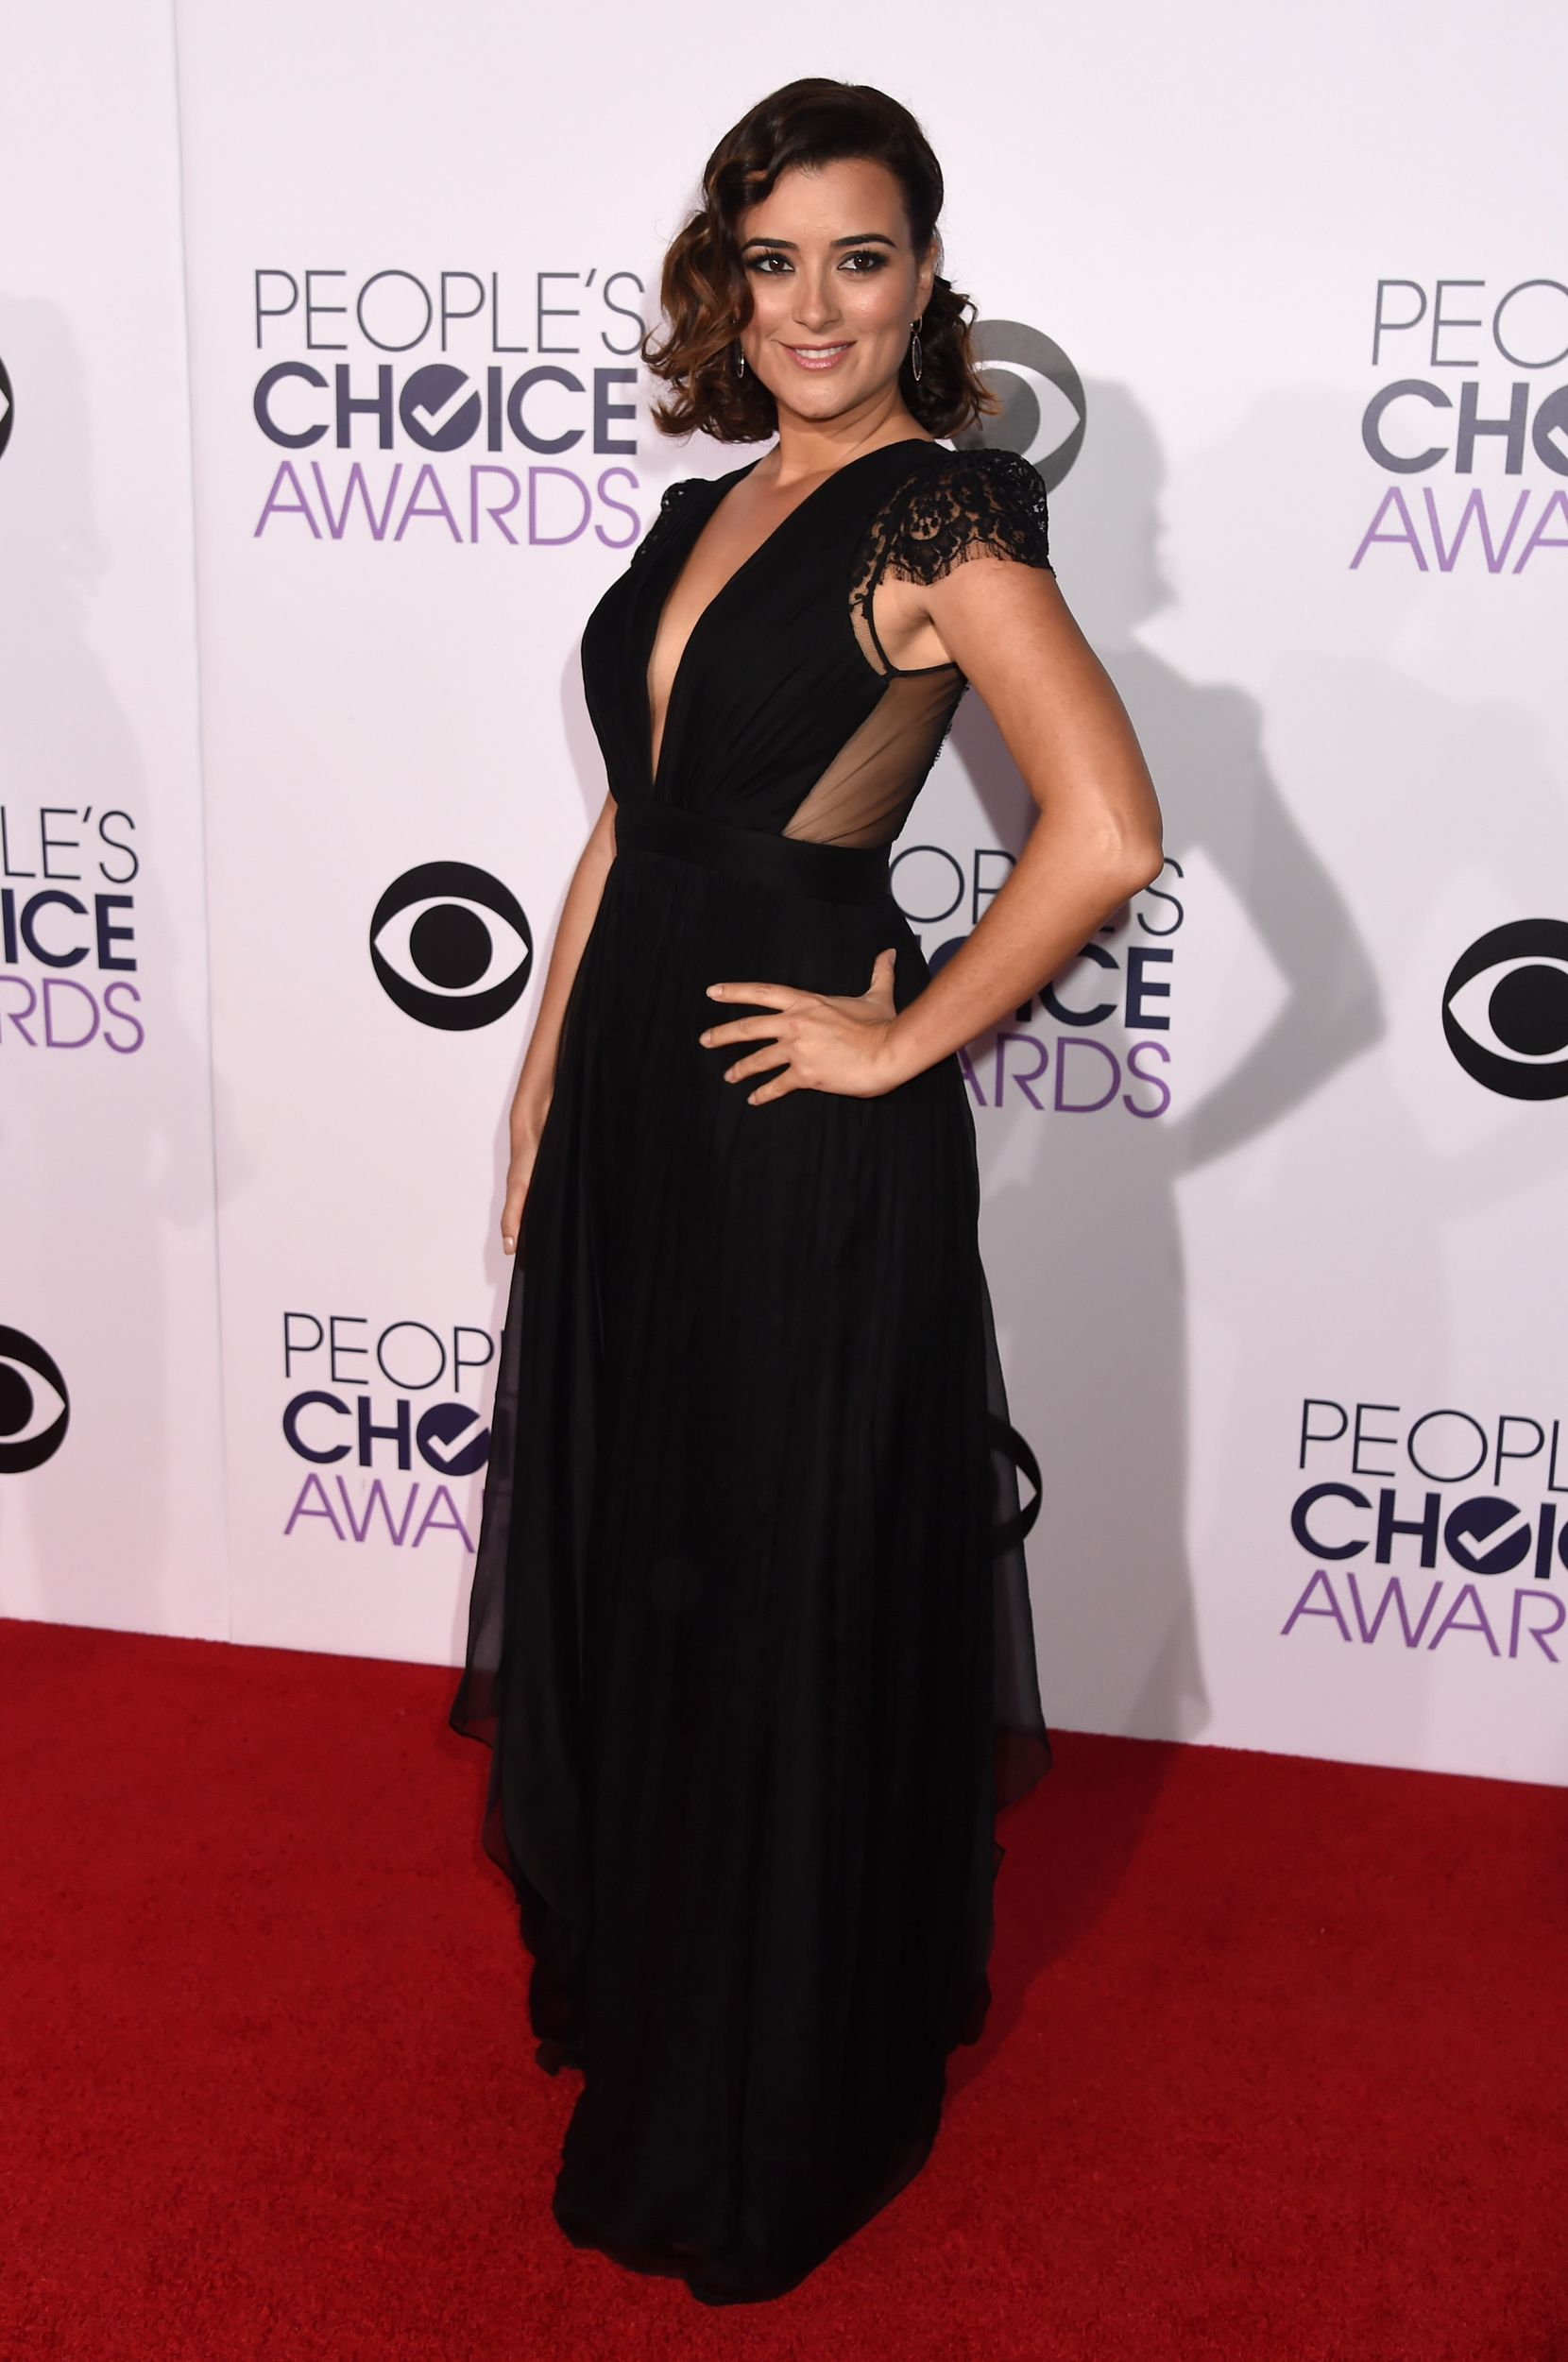 Cote de Pablo via @stylelist | http://aol.it/1DG1mFp